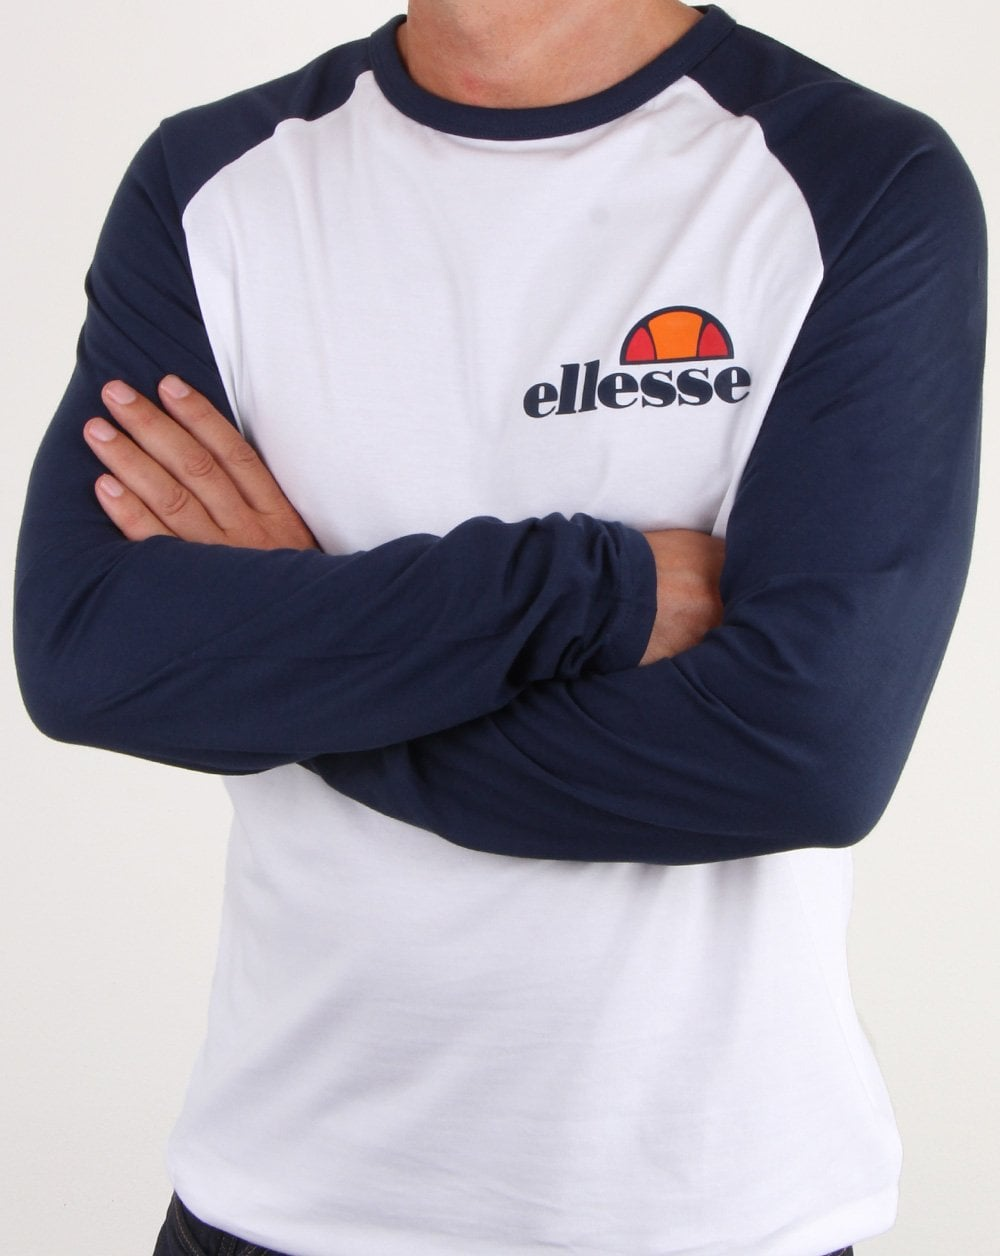 ff54876059 Ellesse Thero Long Sleeve T Shirt White/navy